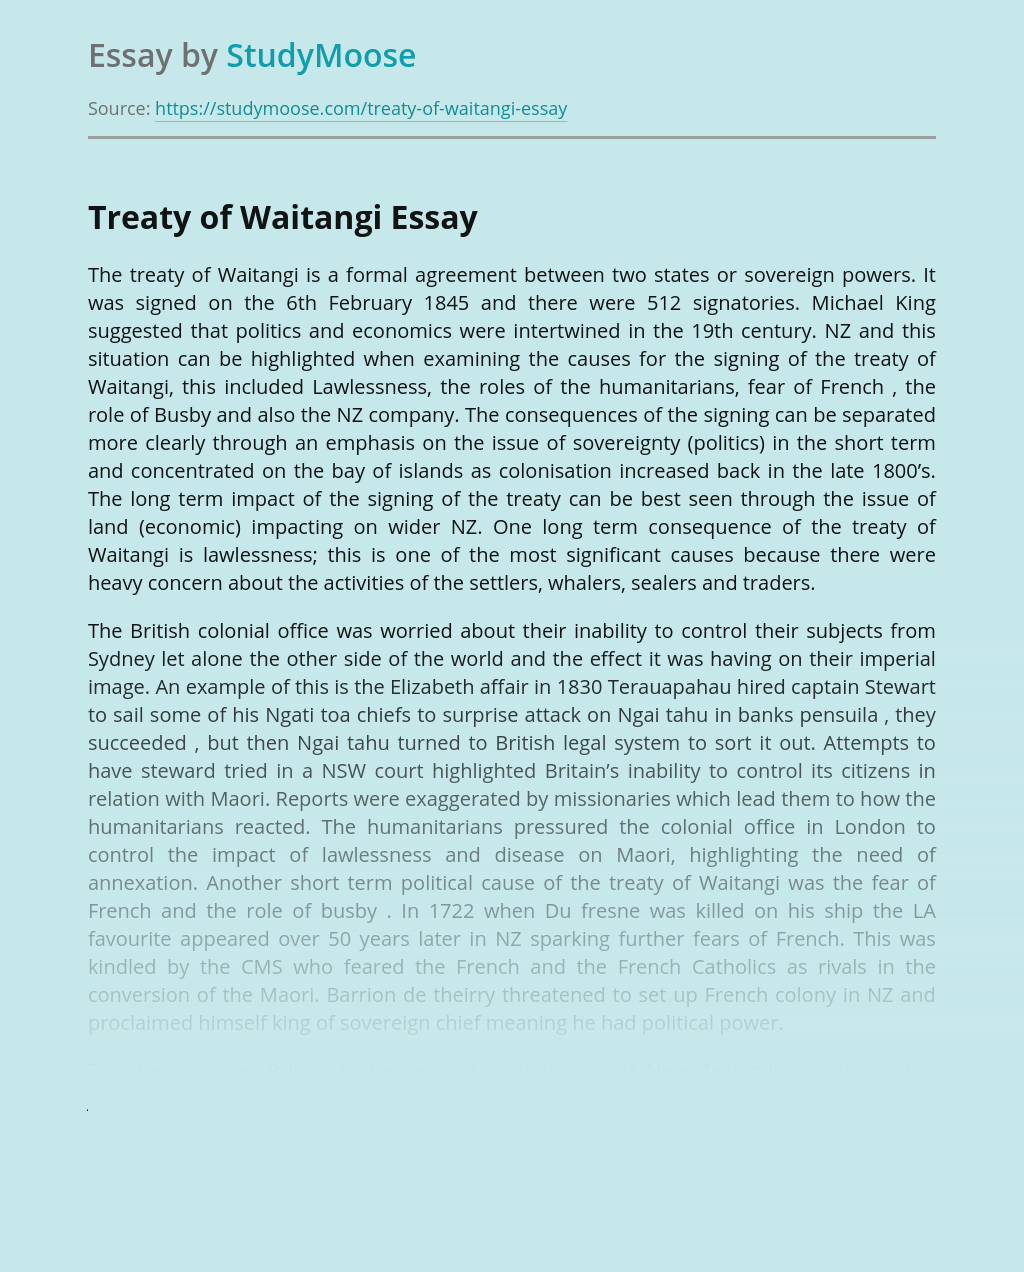 The Treaty of Waitangi